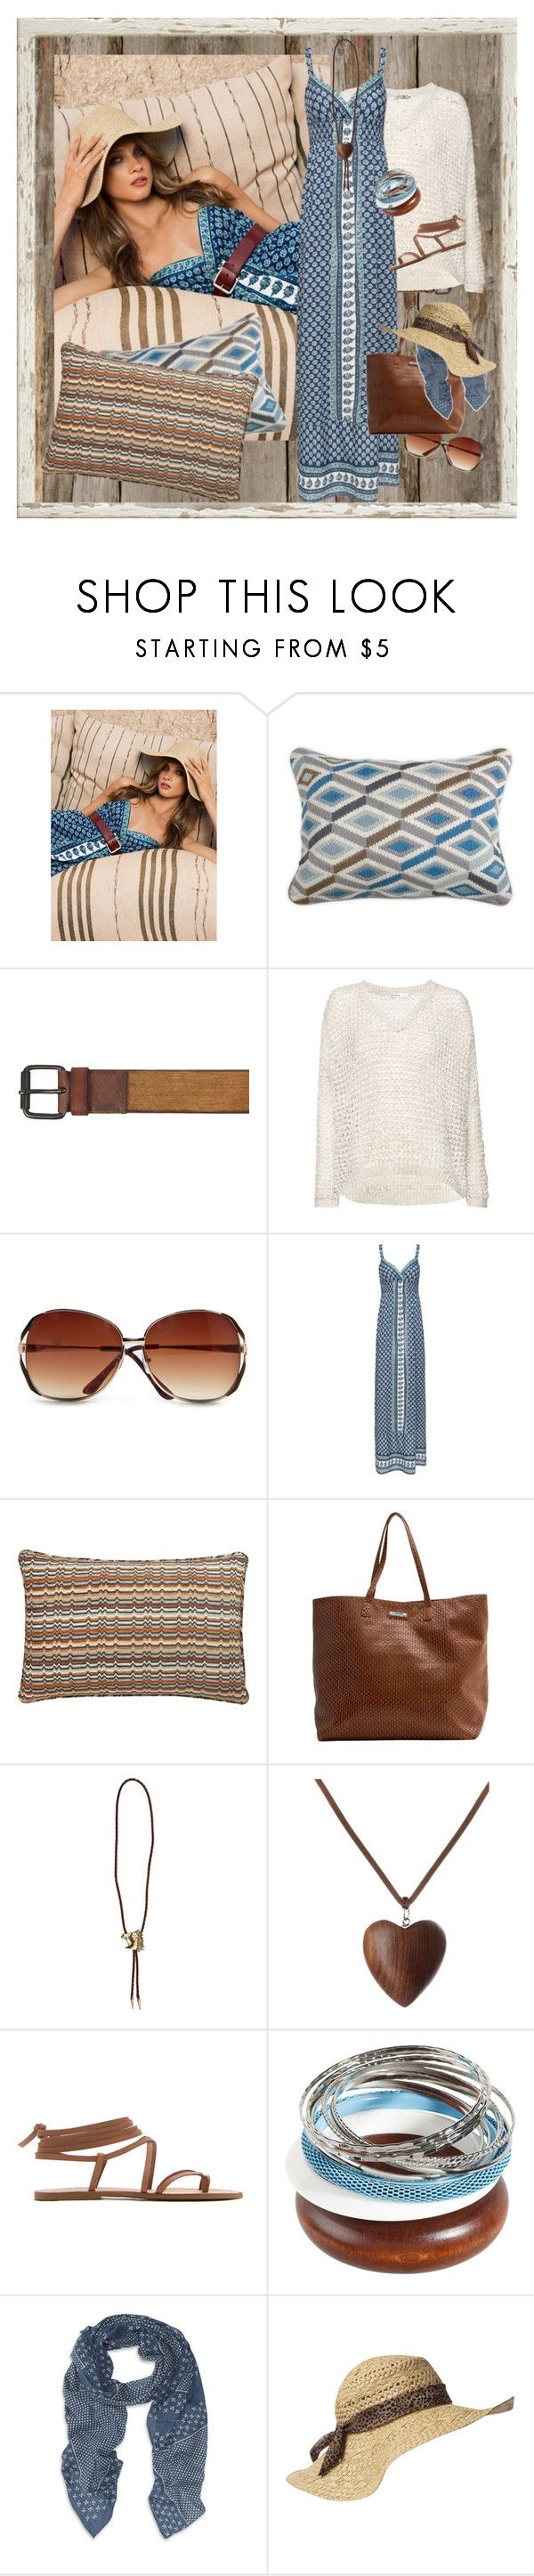 """Mango Summer 2012"" by halebugg ❤ liked on Polyvore featuring MANGO, Jonathan Adler, AllSaints, Crate and Barrel, River Island, Denim & Supply by Ralph Lauren, gladiator sandals, wood, flame stitch pillow and woven tote"